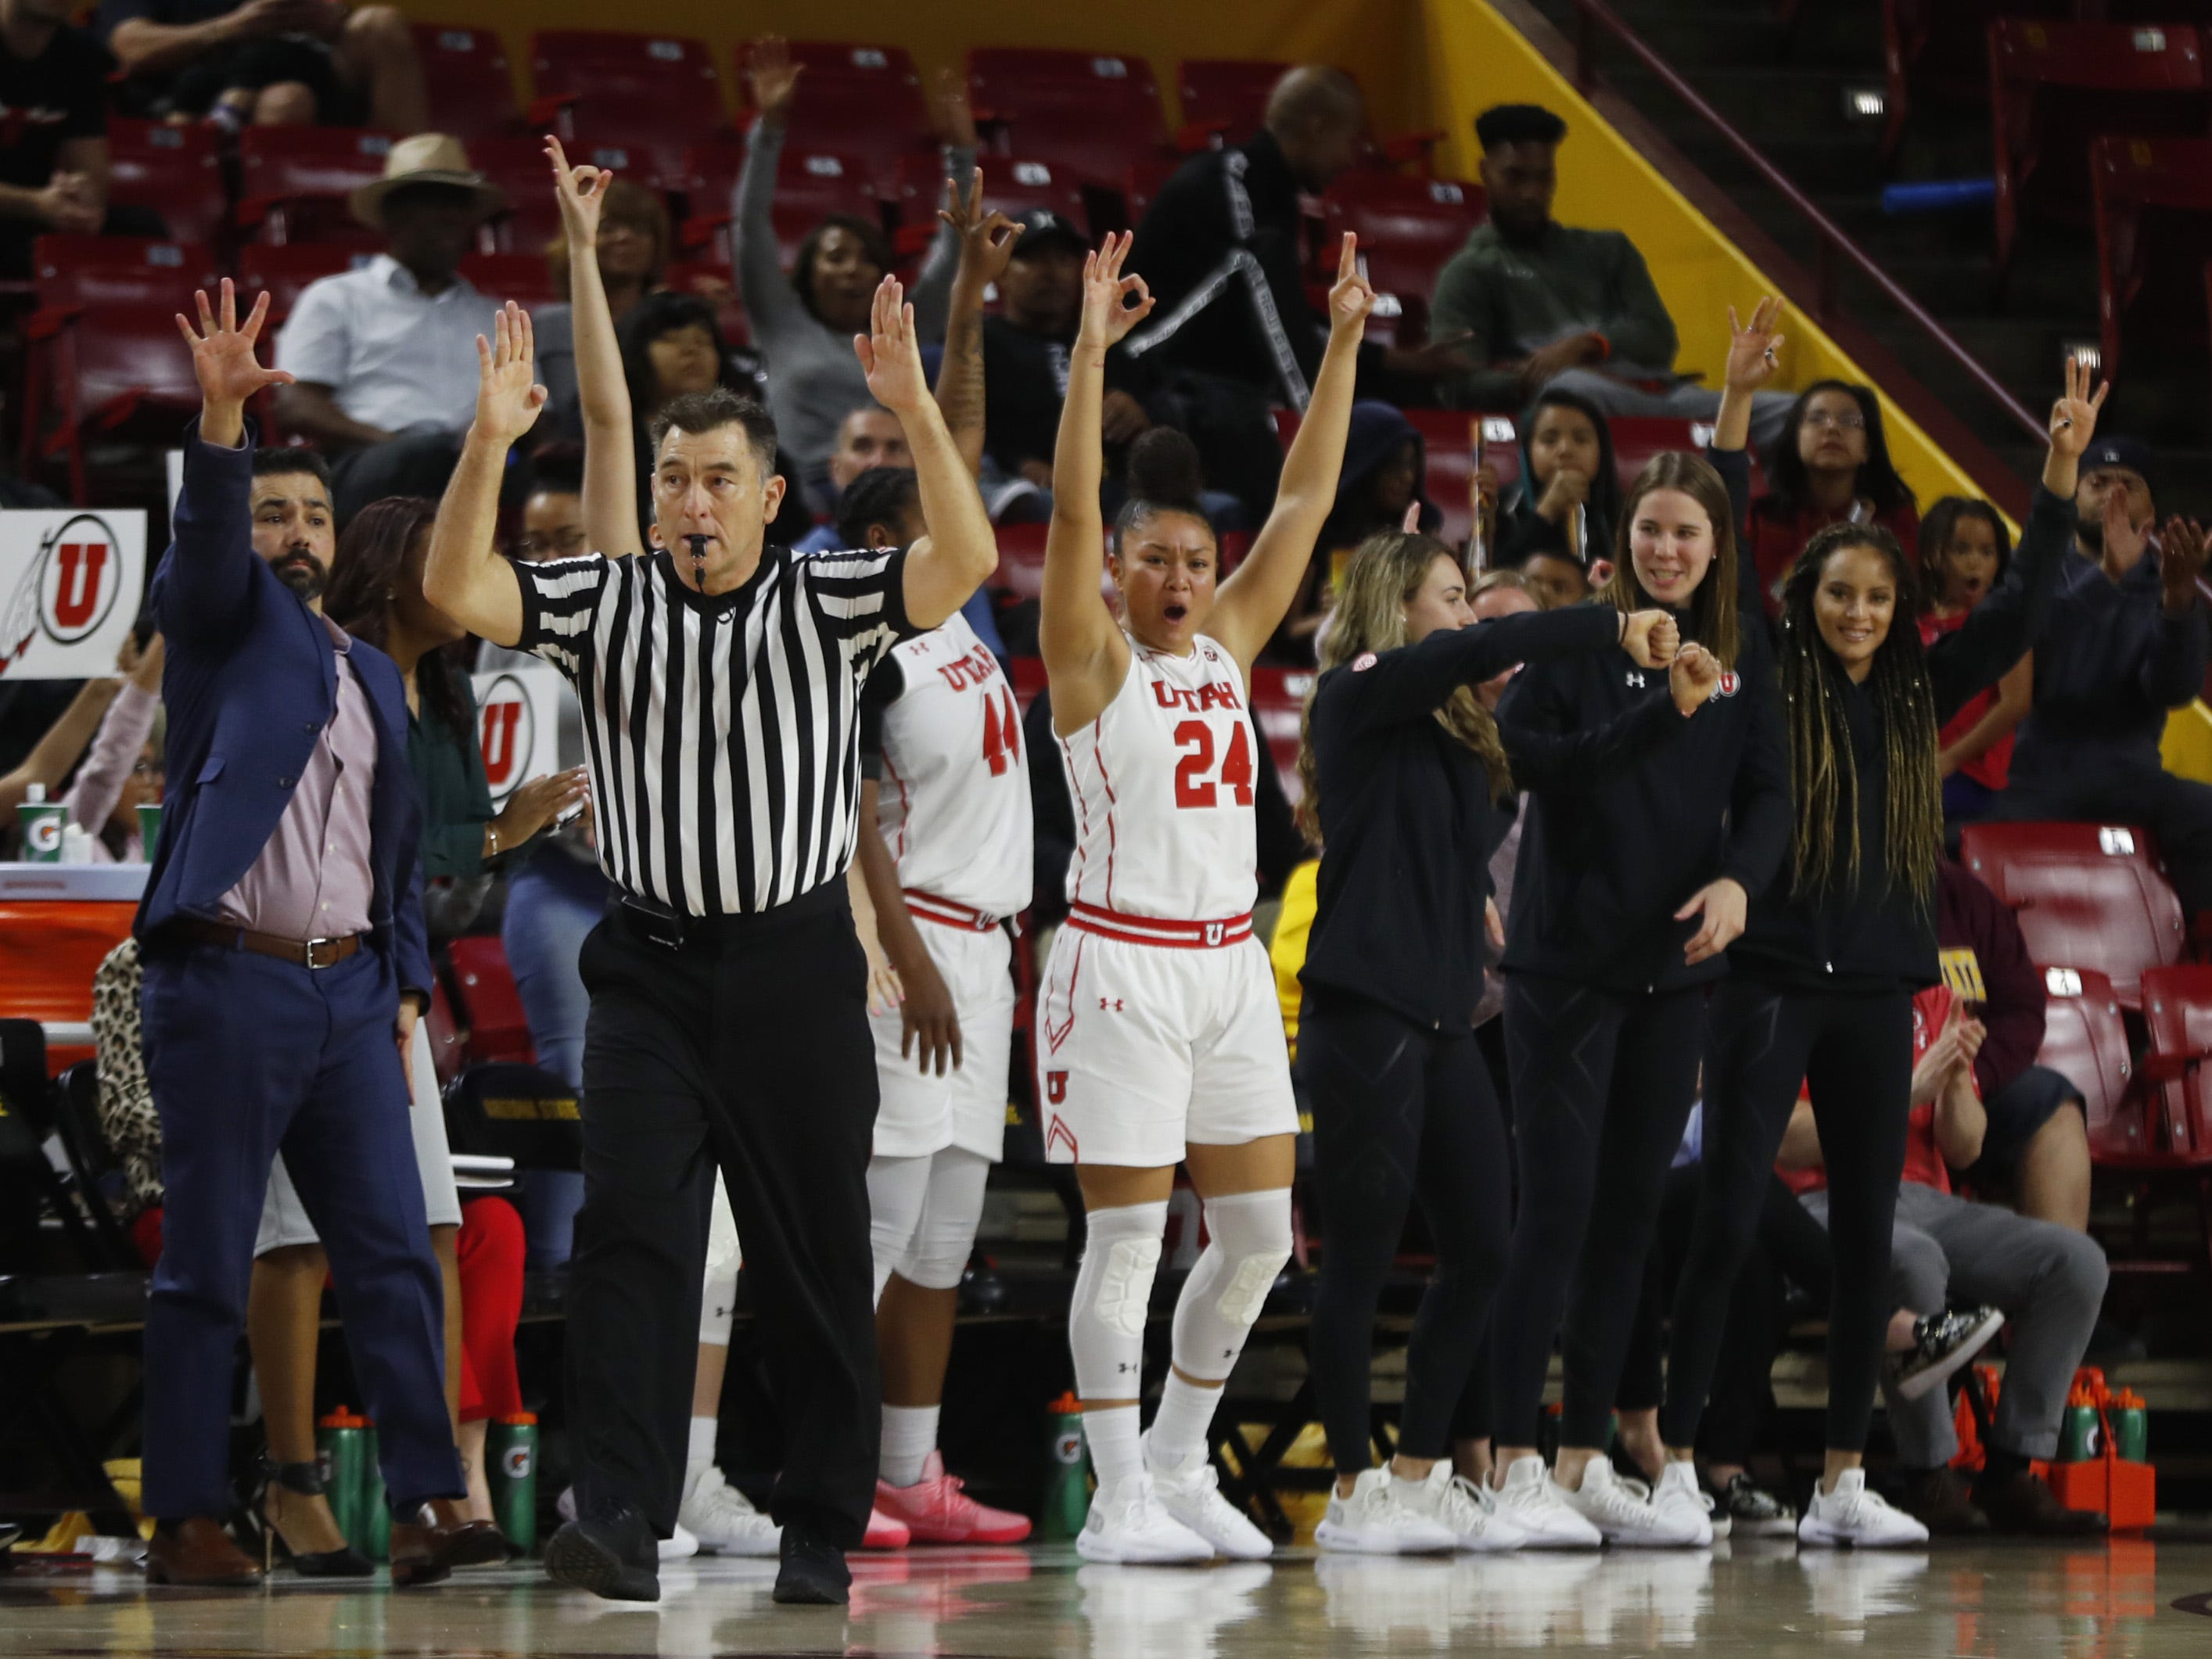 Utah's bench erupts after a three puts them up 17 over the Sun Devils during the second half at Wells Fargo Arena in Tempe, Ariz. on February 17, 2019.